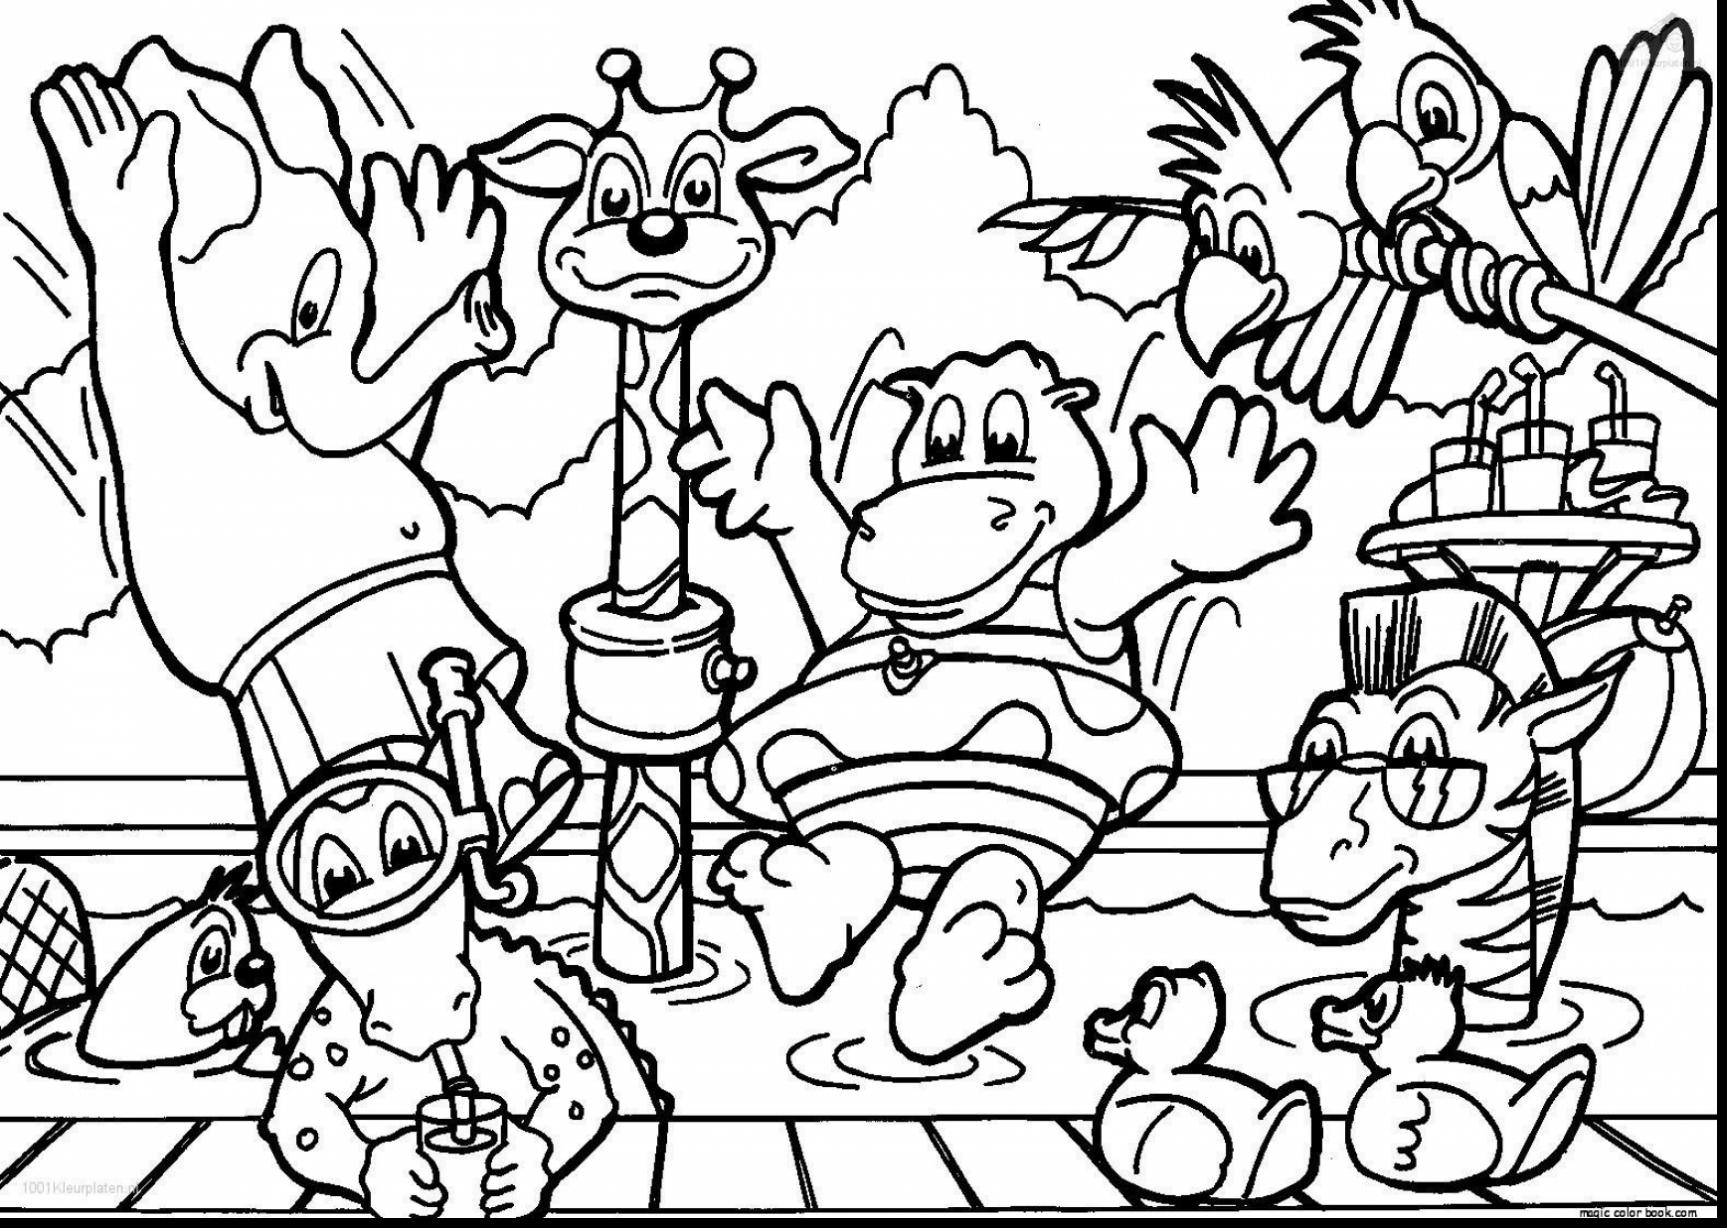 Outline Coloring Pages